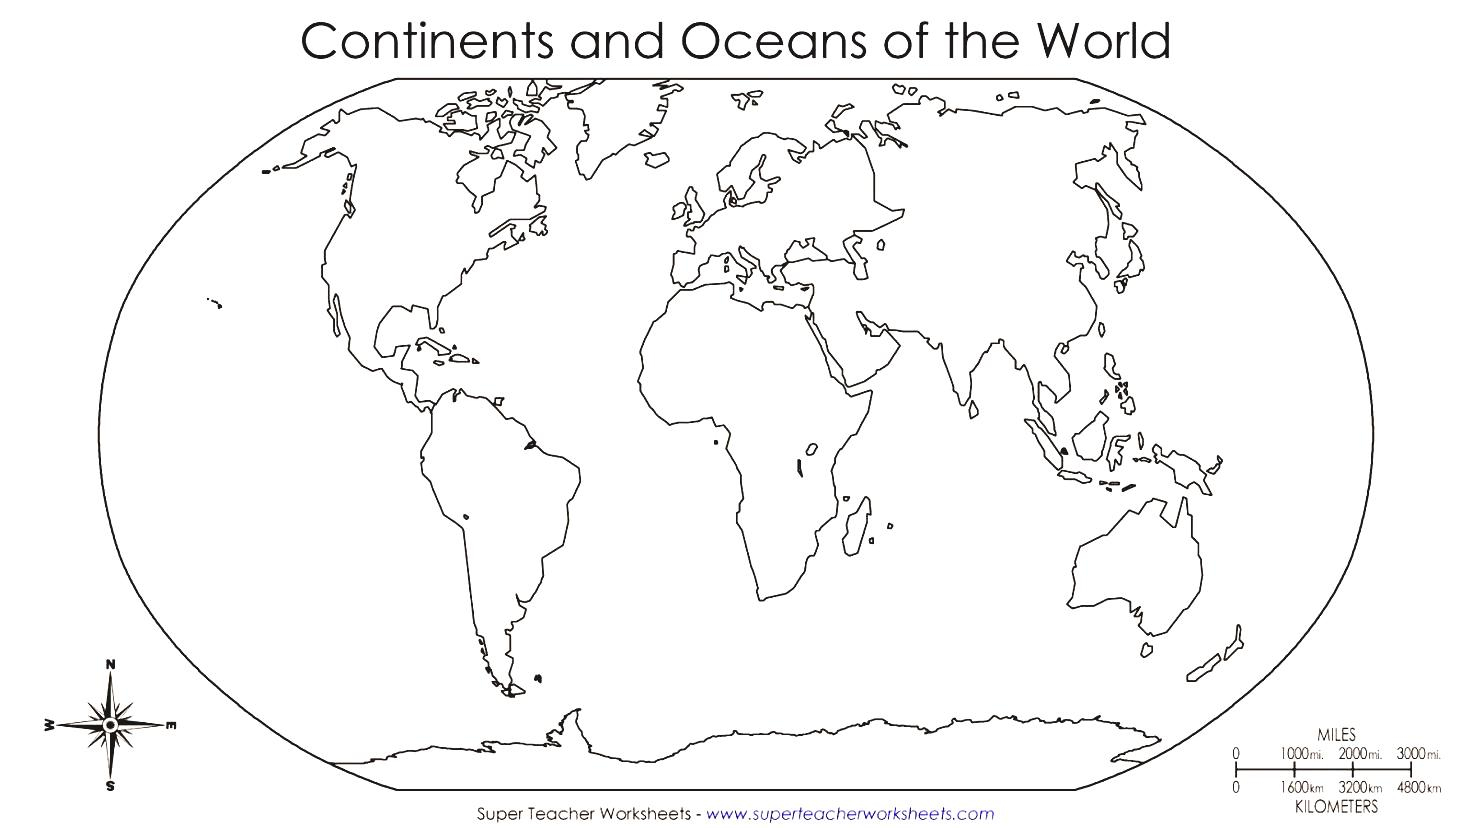 Free Printable Blank World Map Download | Download Them And Try To Solve - Free Printable Blank World Map Download